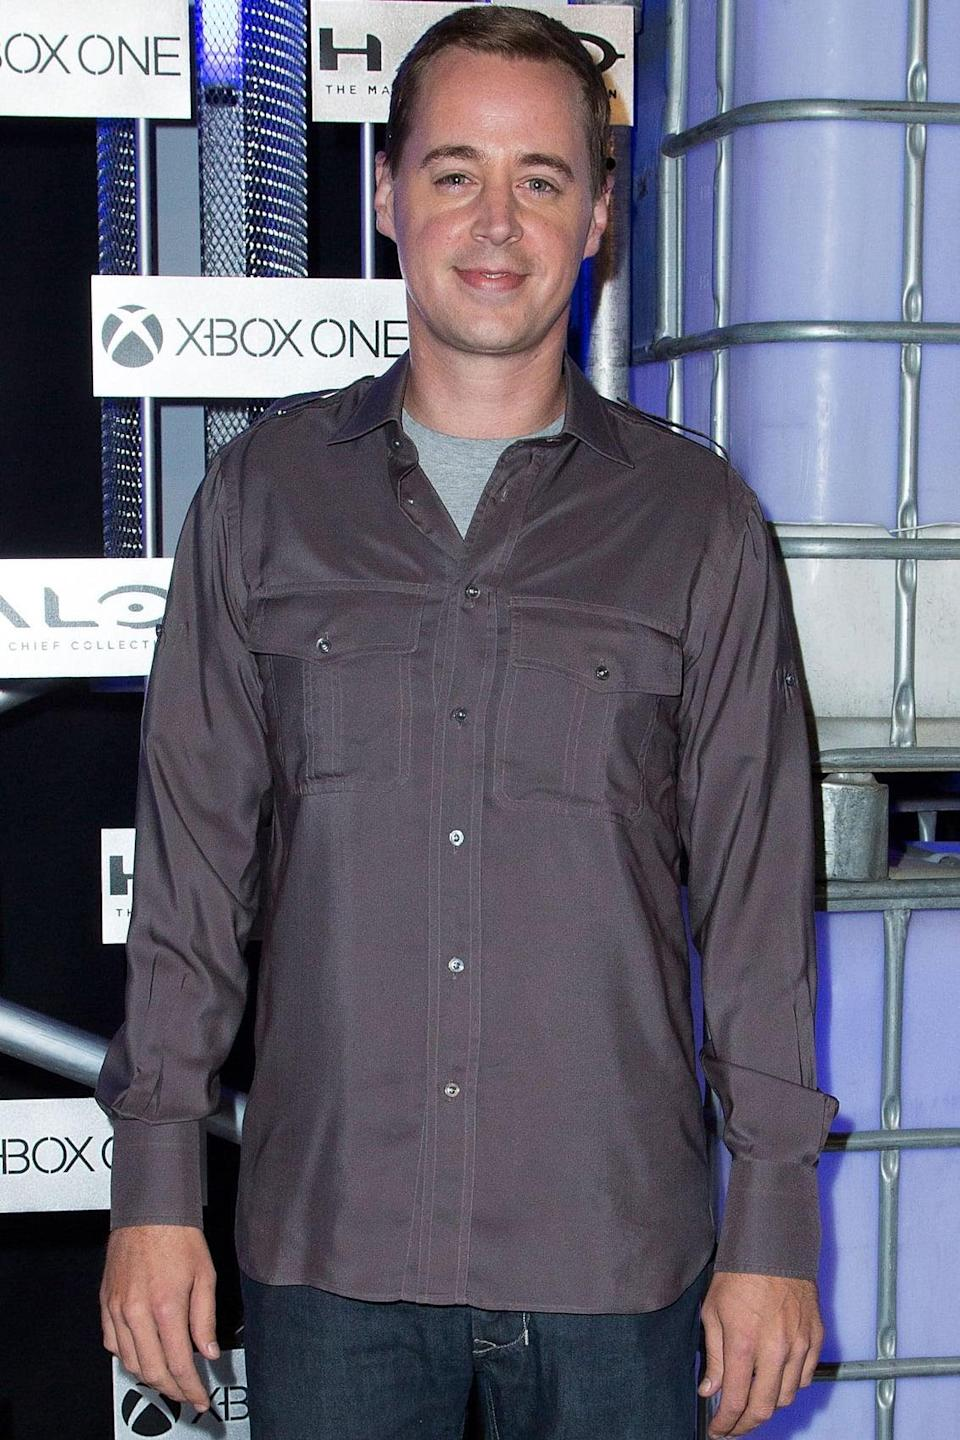 <p>Sean Murray's résumé is full of TV and made-for-TV movies. He's been starring on <strong>NCIS</strong> as Timothy McGee for a whopping 18 years, so you can still see him on a weekly basis.</p>